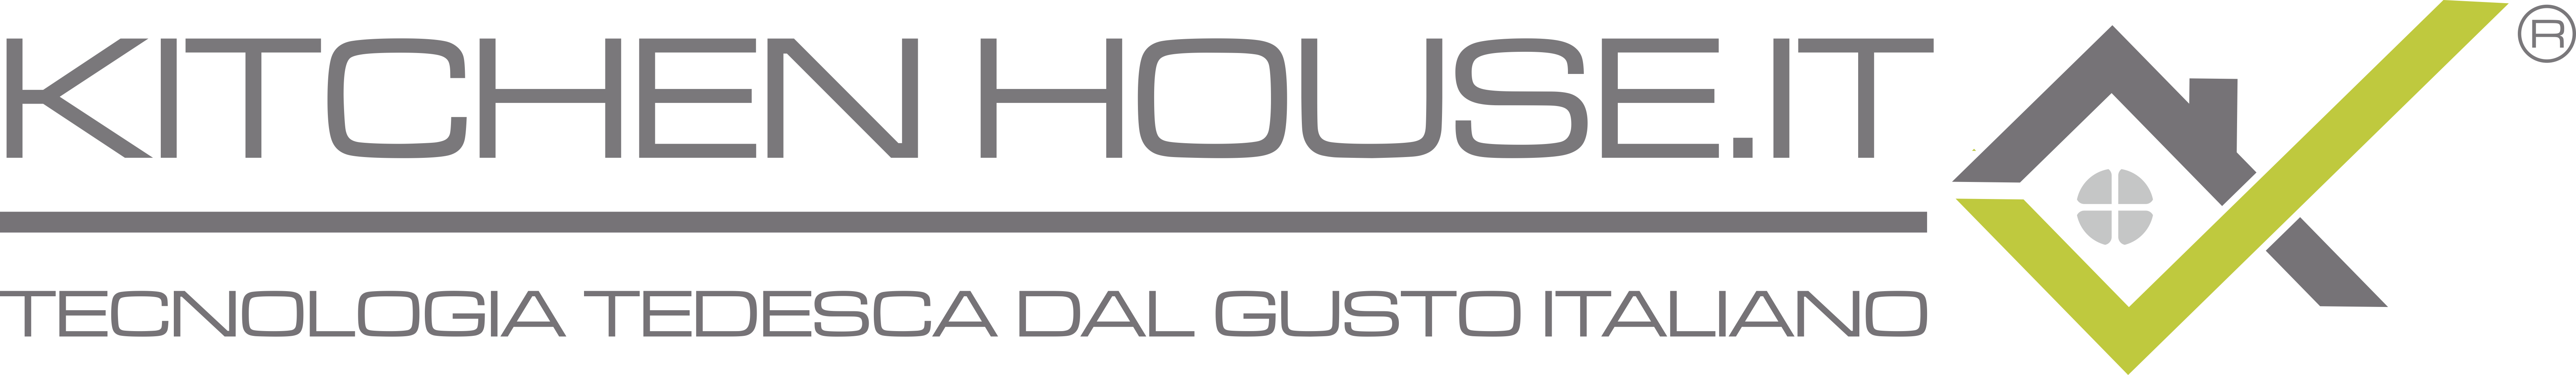 Logo Kitchen house grigio